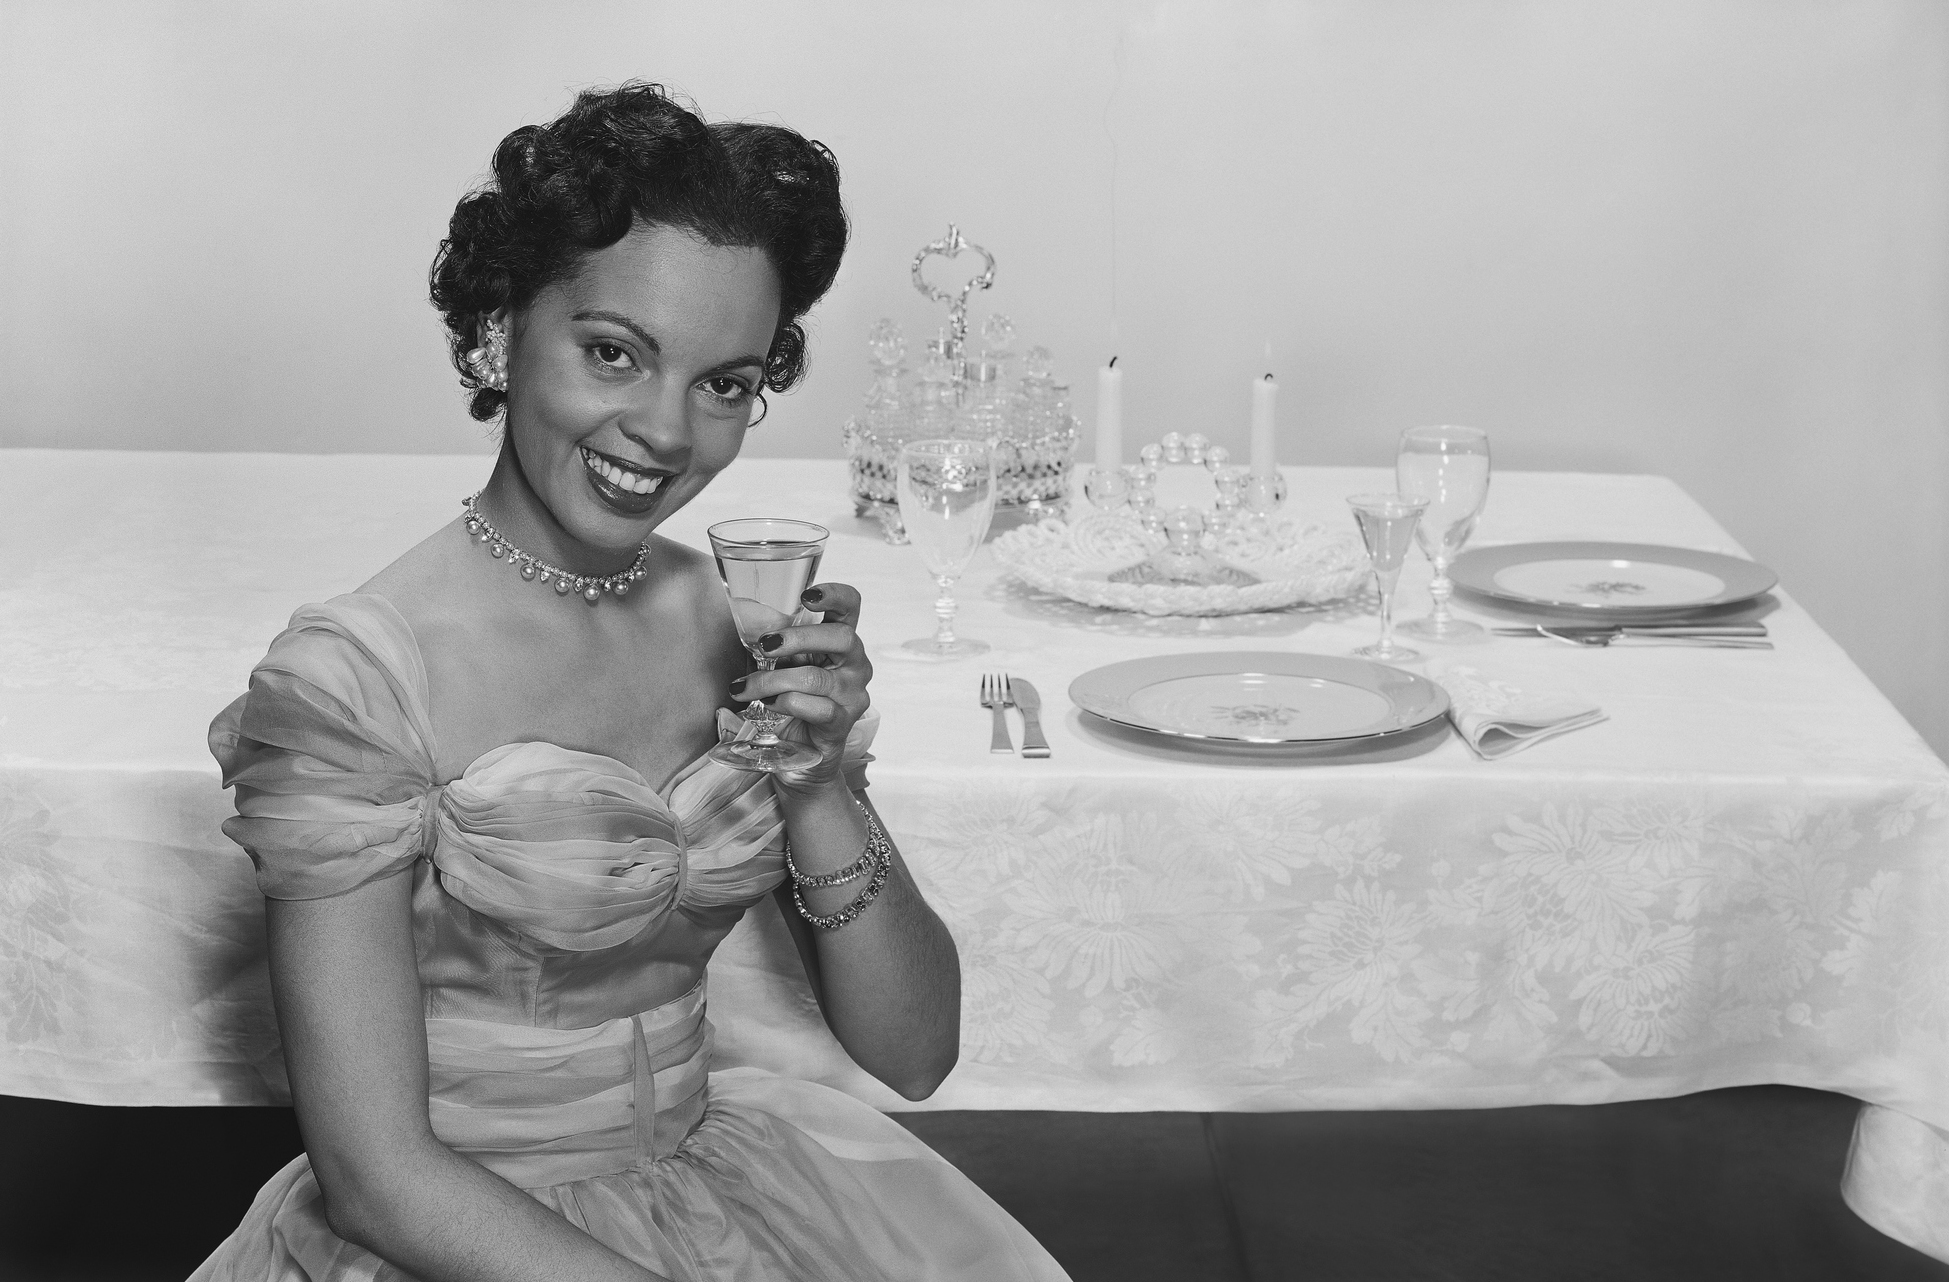 Woman holding glass of drink, smiling, portrait